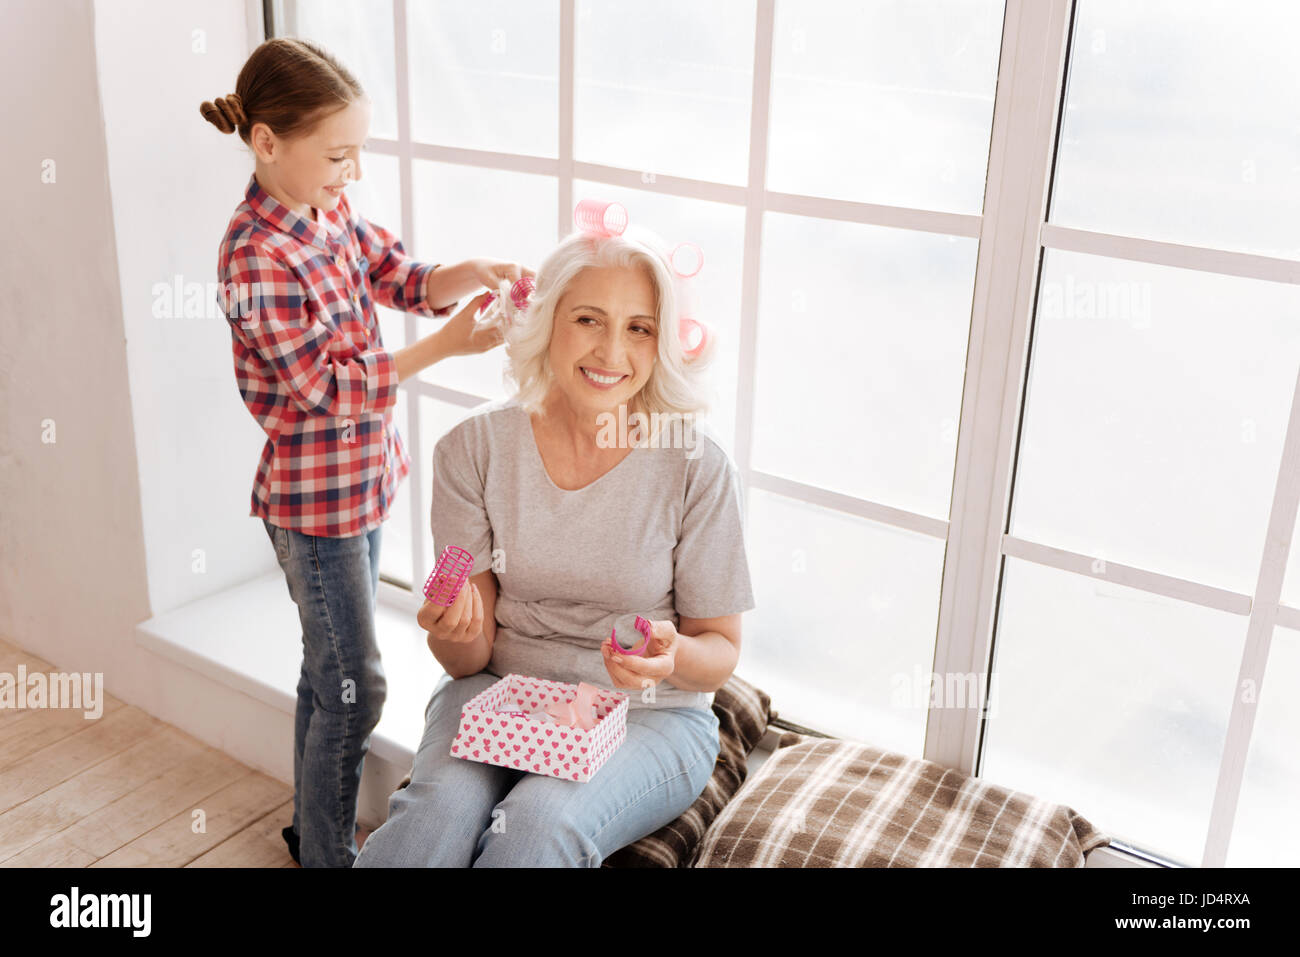 Positive cheerful girl using hair rollers - Stock Image